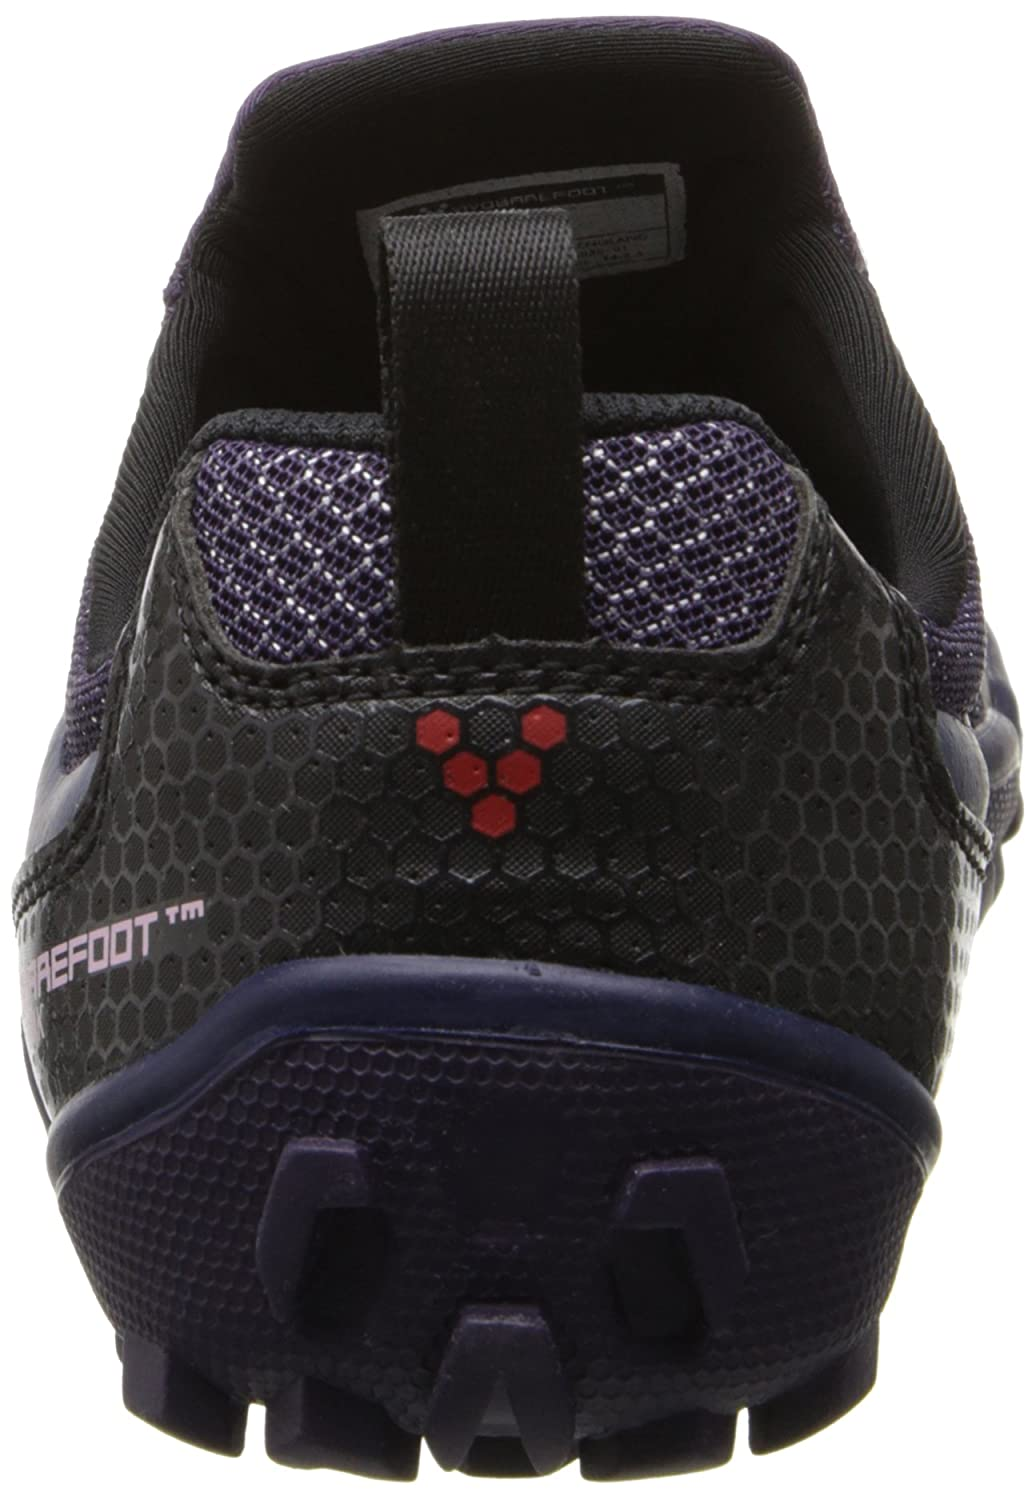 Vivobarefoot Women's Trail Freak B00INBYSV0 Off-Road Run-Walk Trail Shoe B00INBYSV0 Freak 35 M EU / 5 B(M) US|Dark Purple/Navy 288e1a